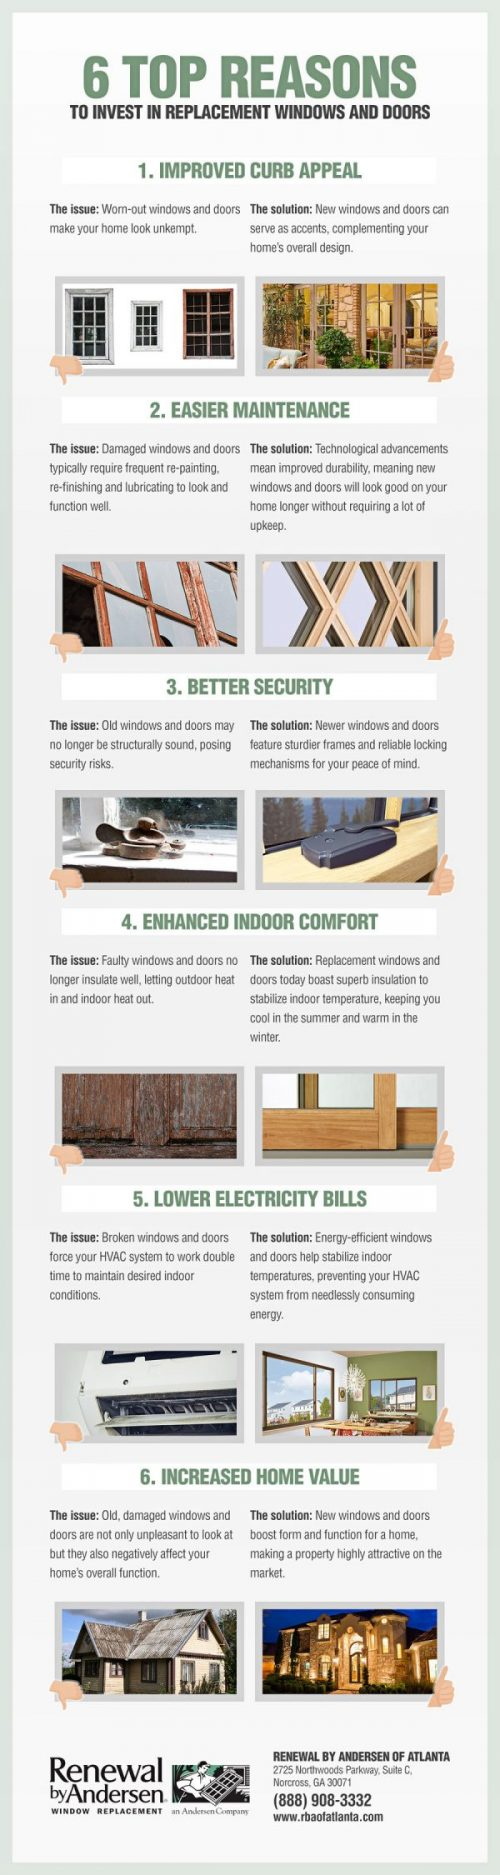 [INFOGRAPHIC] 6 Top Reasons to Invest in Replacement Windows and Doors